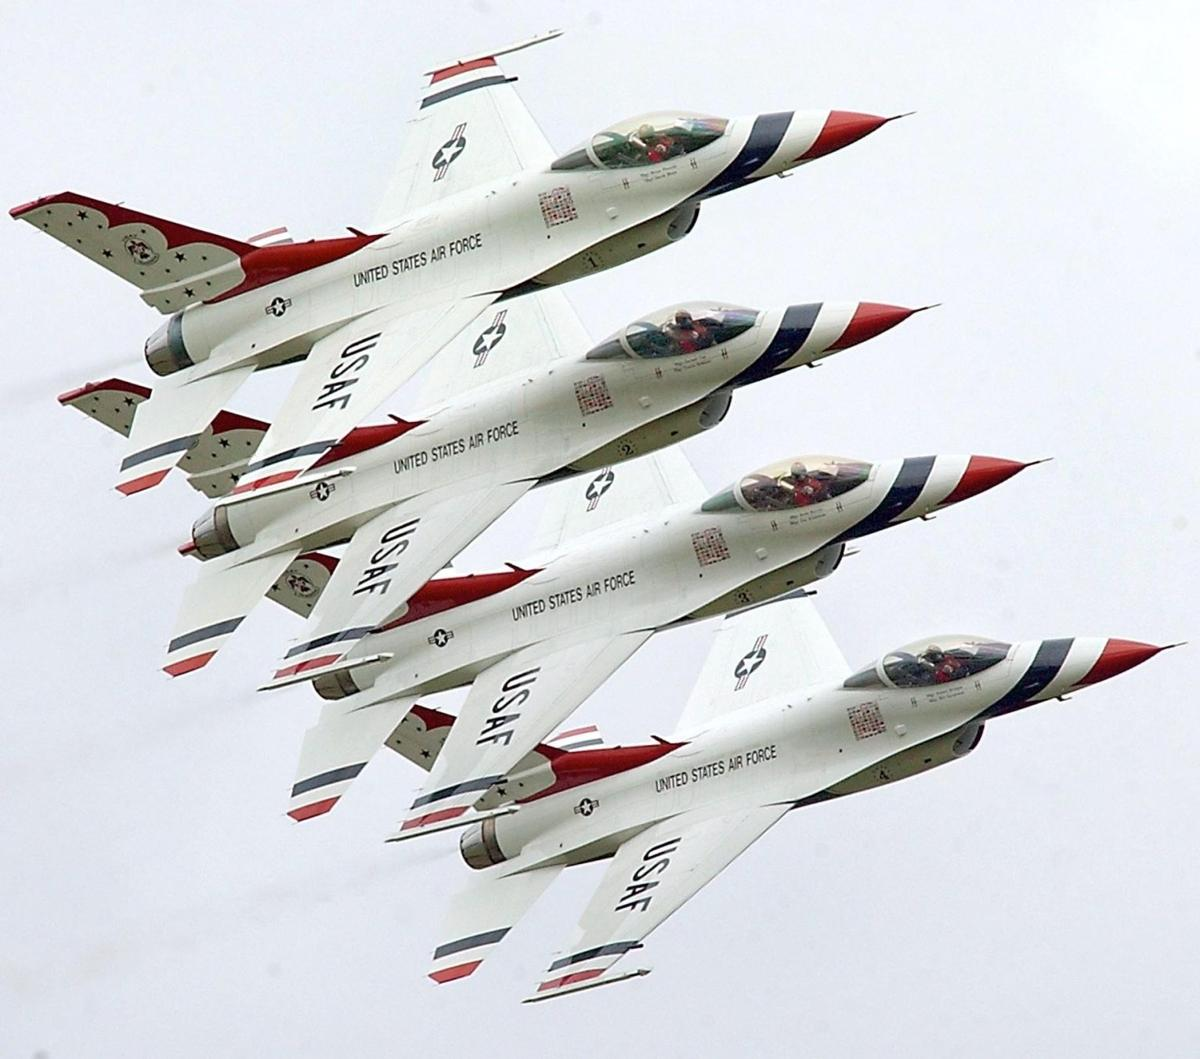 Thunderbirds coming to Mankato